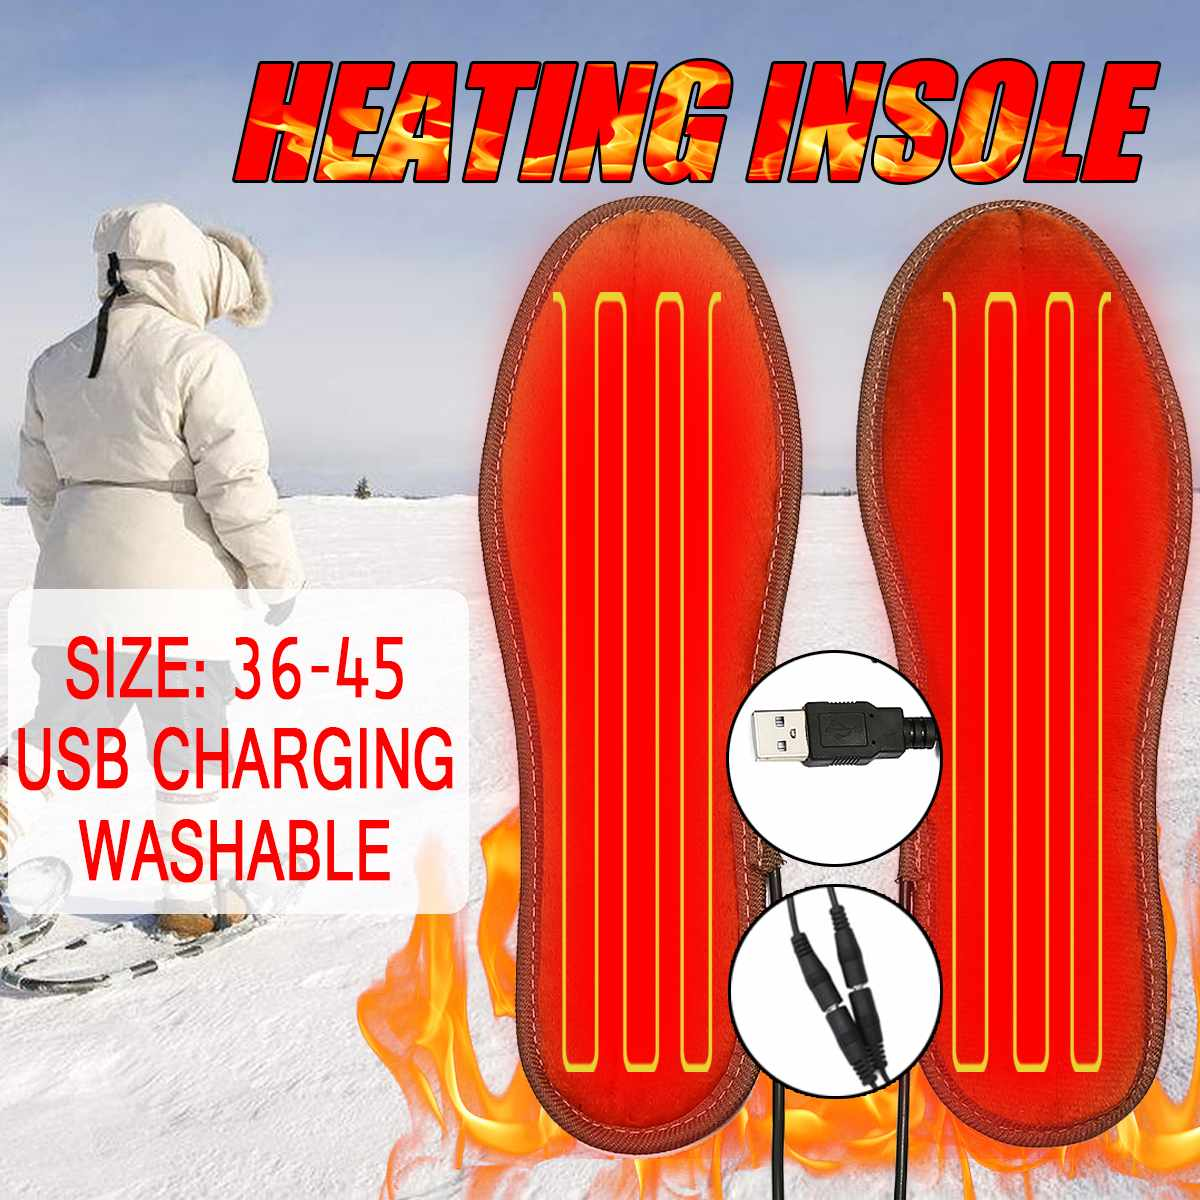 Unisex USB Rechargeable Electric Heated Insoles for Shoes Winter Warmer Heating Foot Pads Boots Charging Heater InsoleUnisex USB Rechargeable Electric Heated Insoles for Shoes Winter Warmer Heating Foot Pads Boots Charging Heater Insole